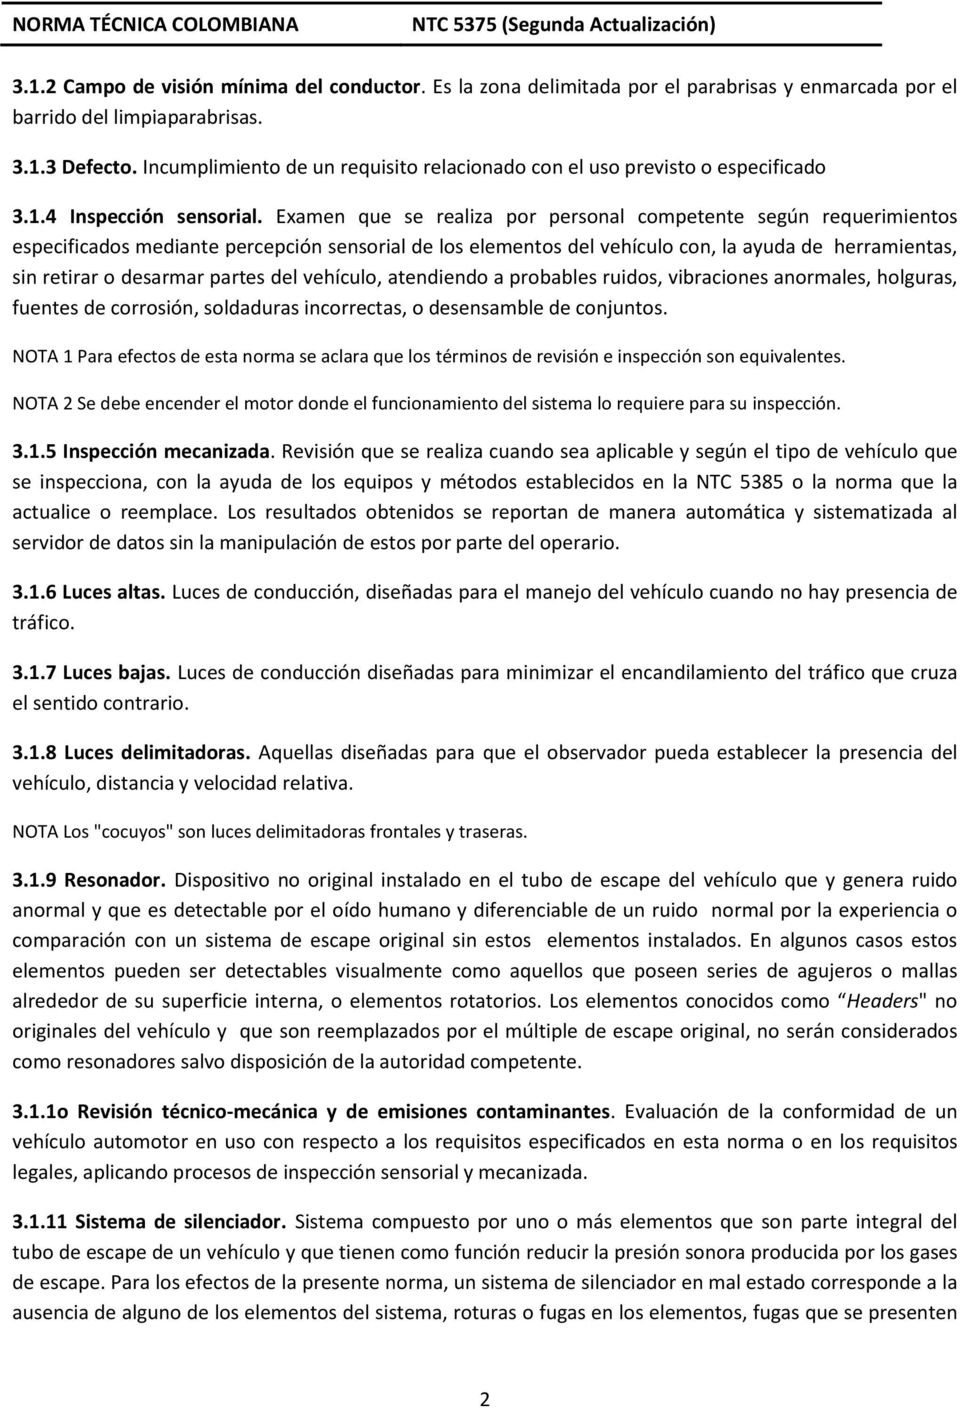 NORMA TÉCNICA COLOMBIANA PDF